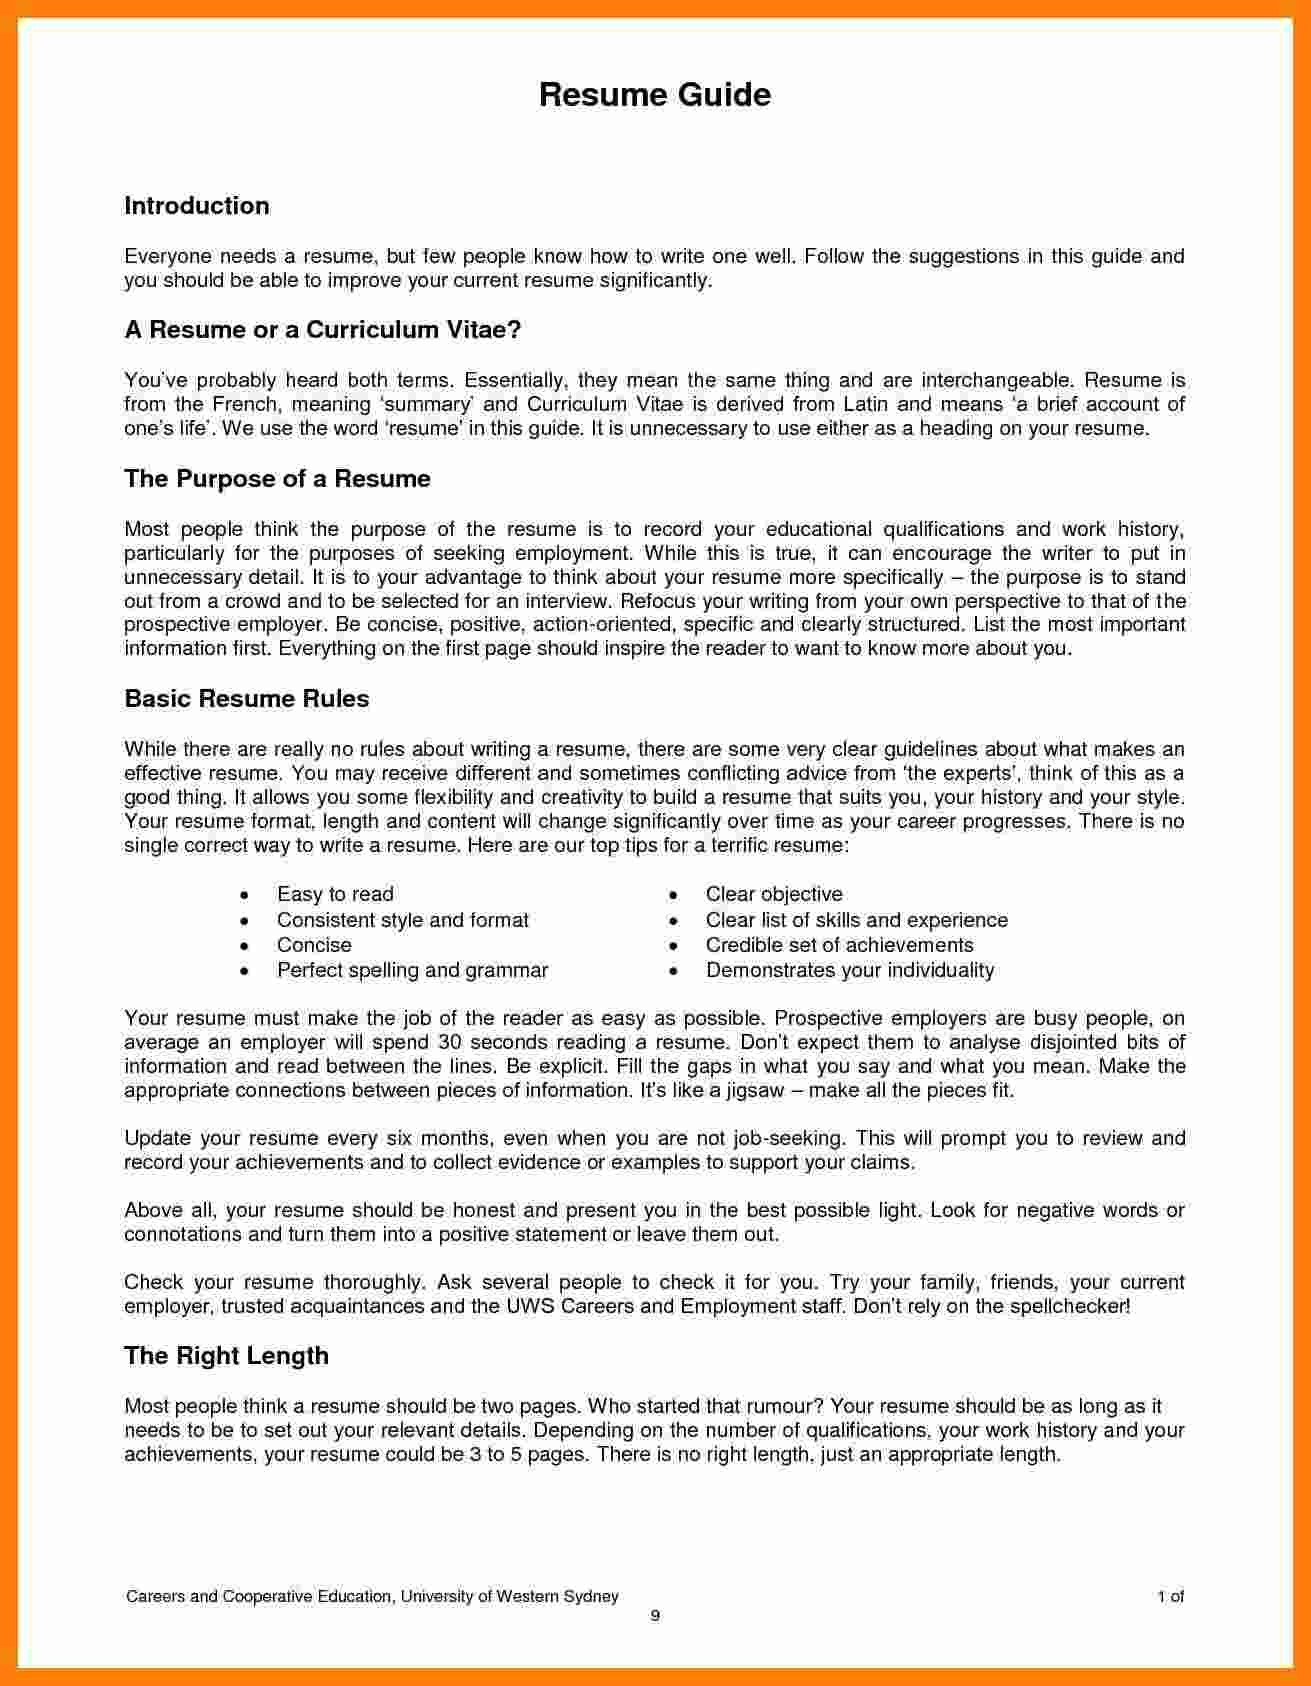 goverment resume Collection-Government Resume Examples Lovely Unique Federal Government Resume Template Best Bsw Resume 0d Government Resume 8-n